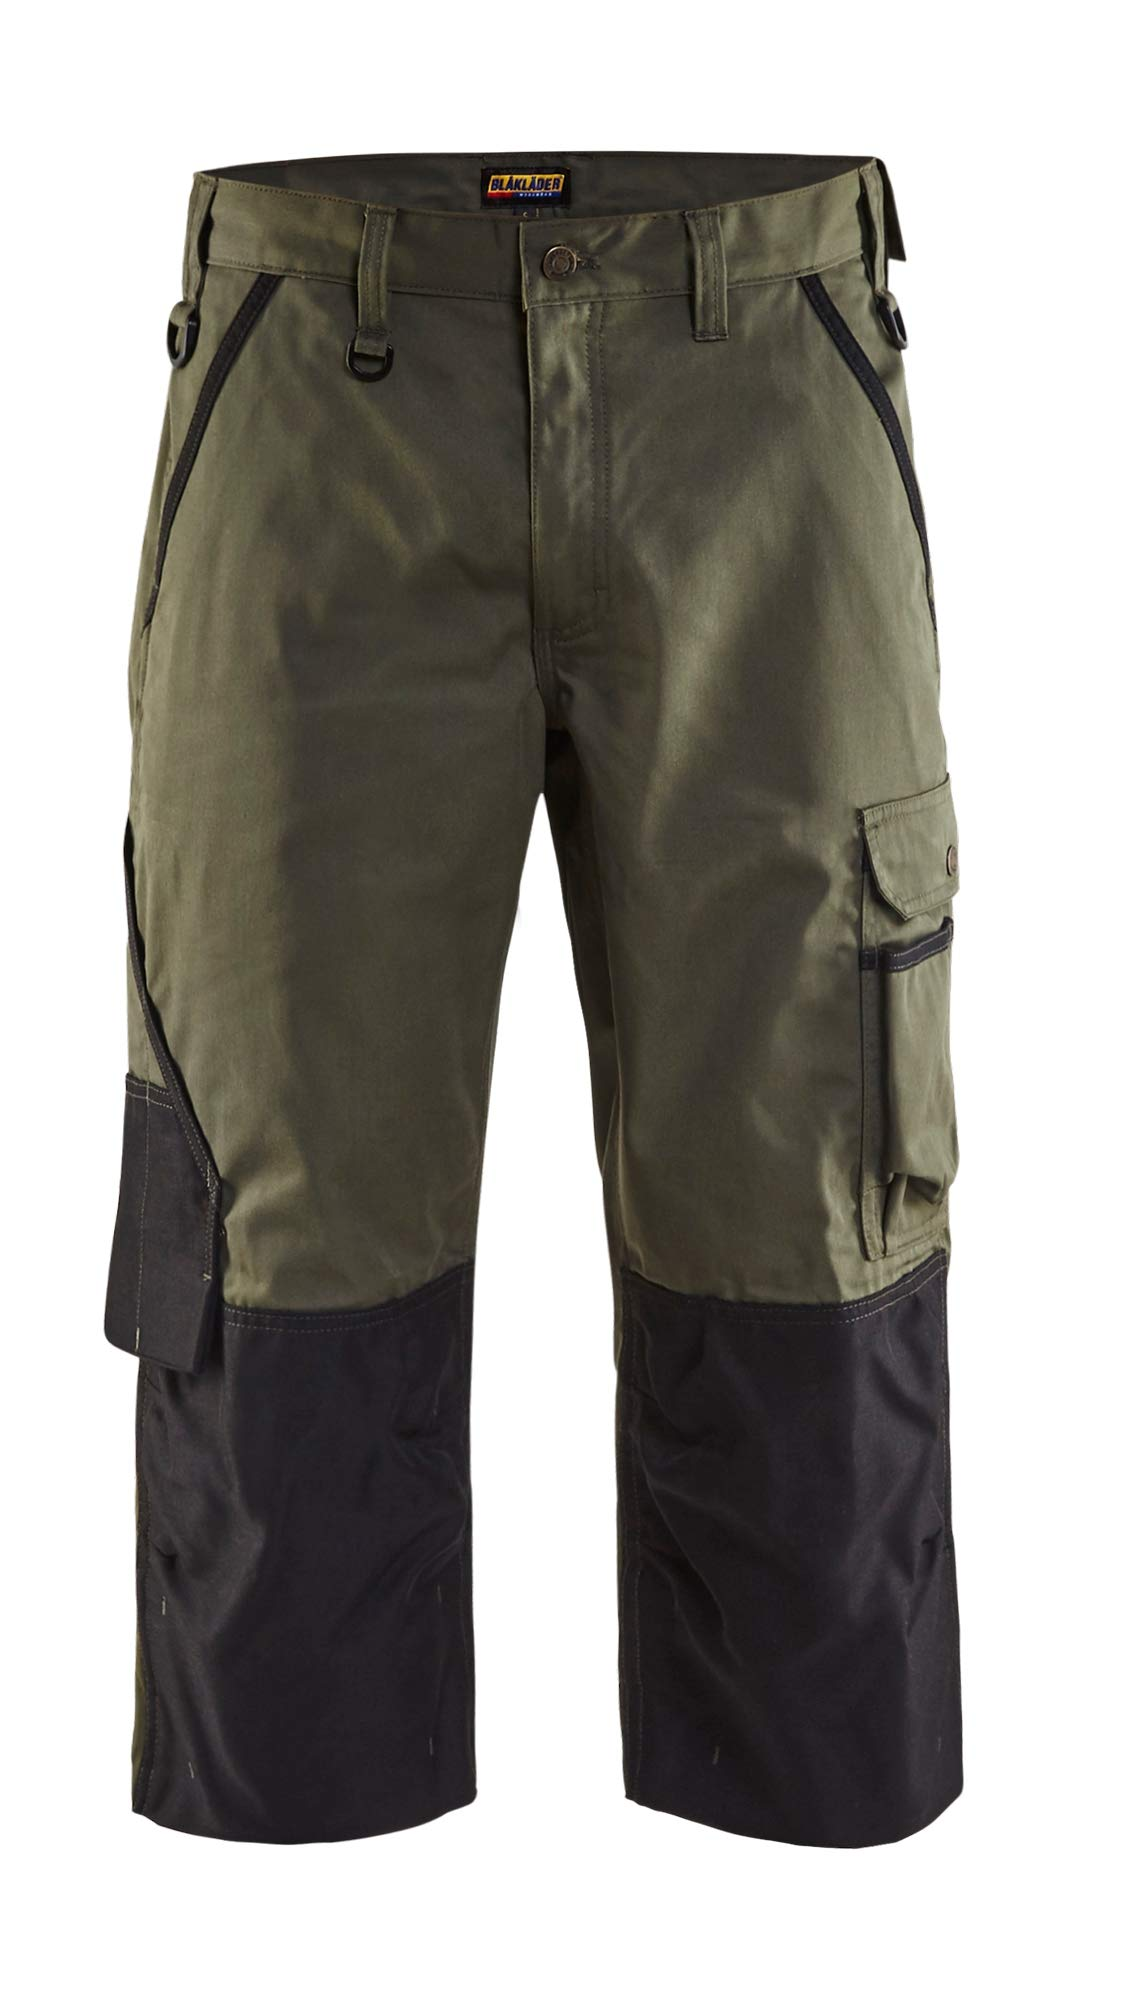 145518354699C58 Garden Trousers''Pirate'' Size 42/32 (Metric Size C58) IN Army-Green/Black, Army Green/Black